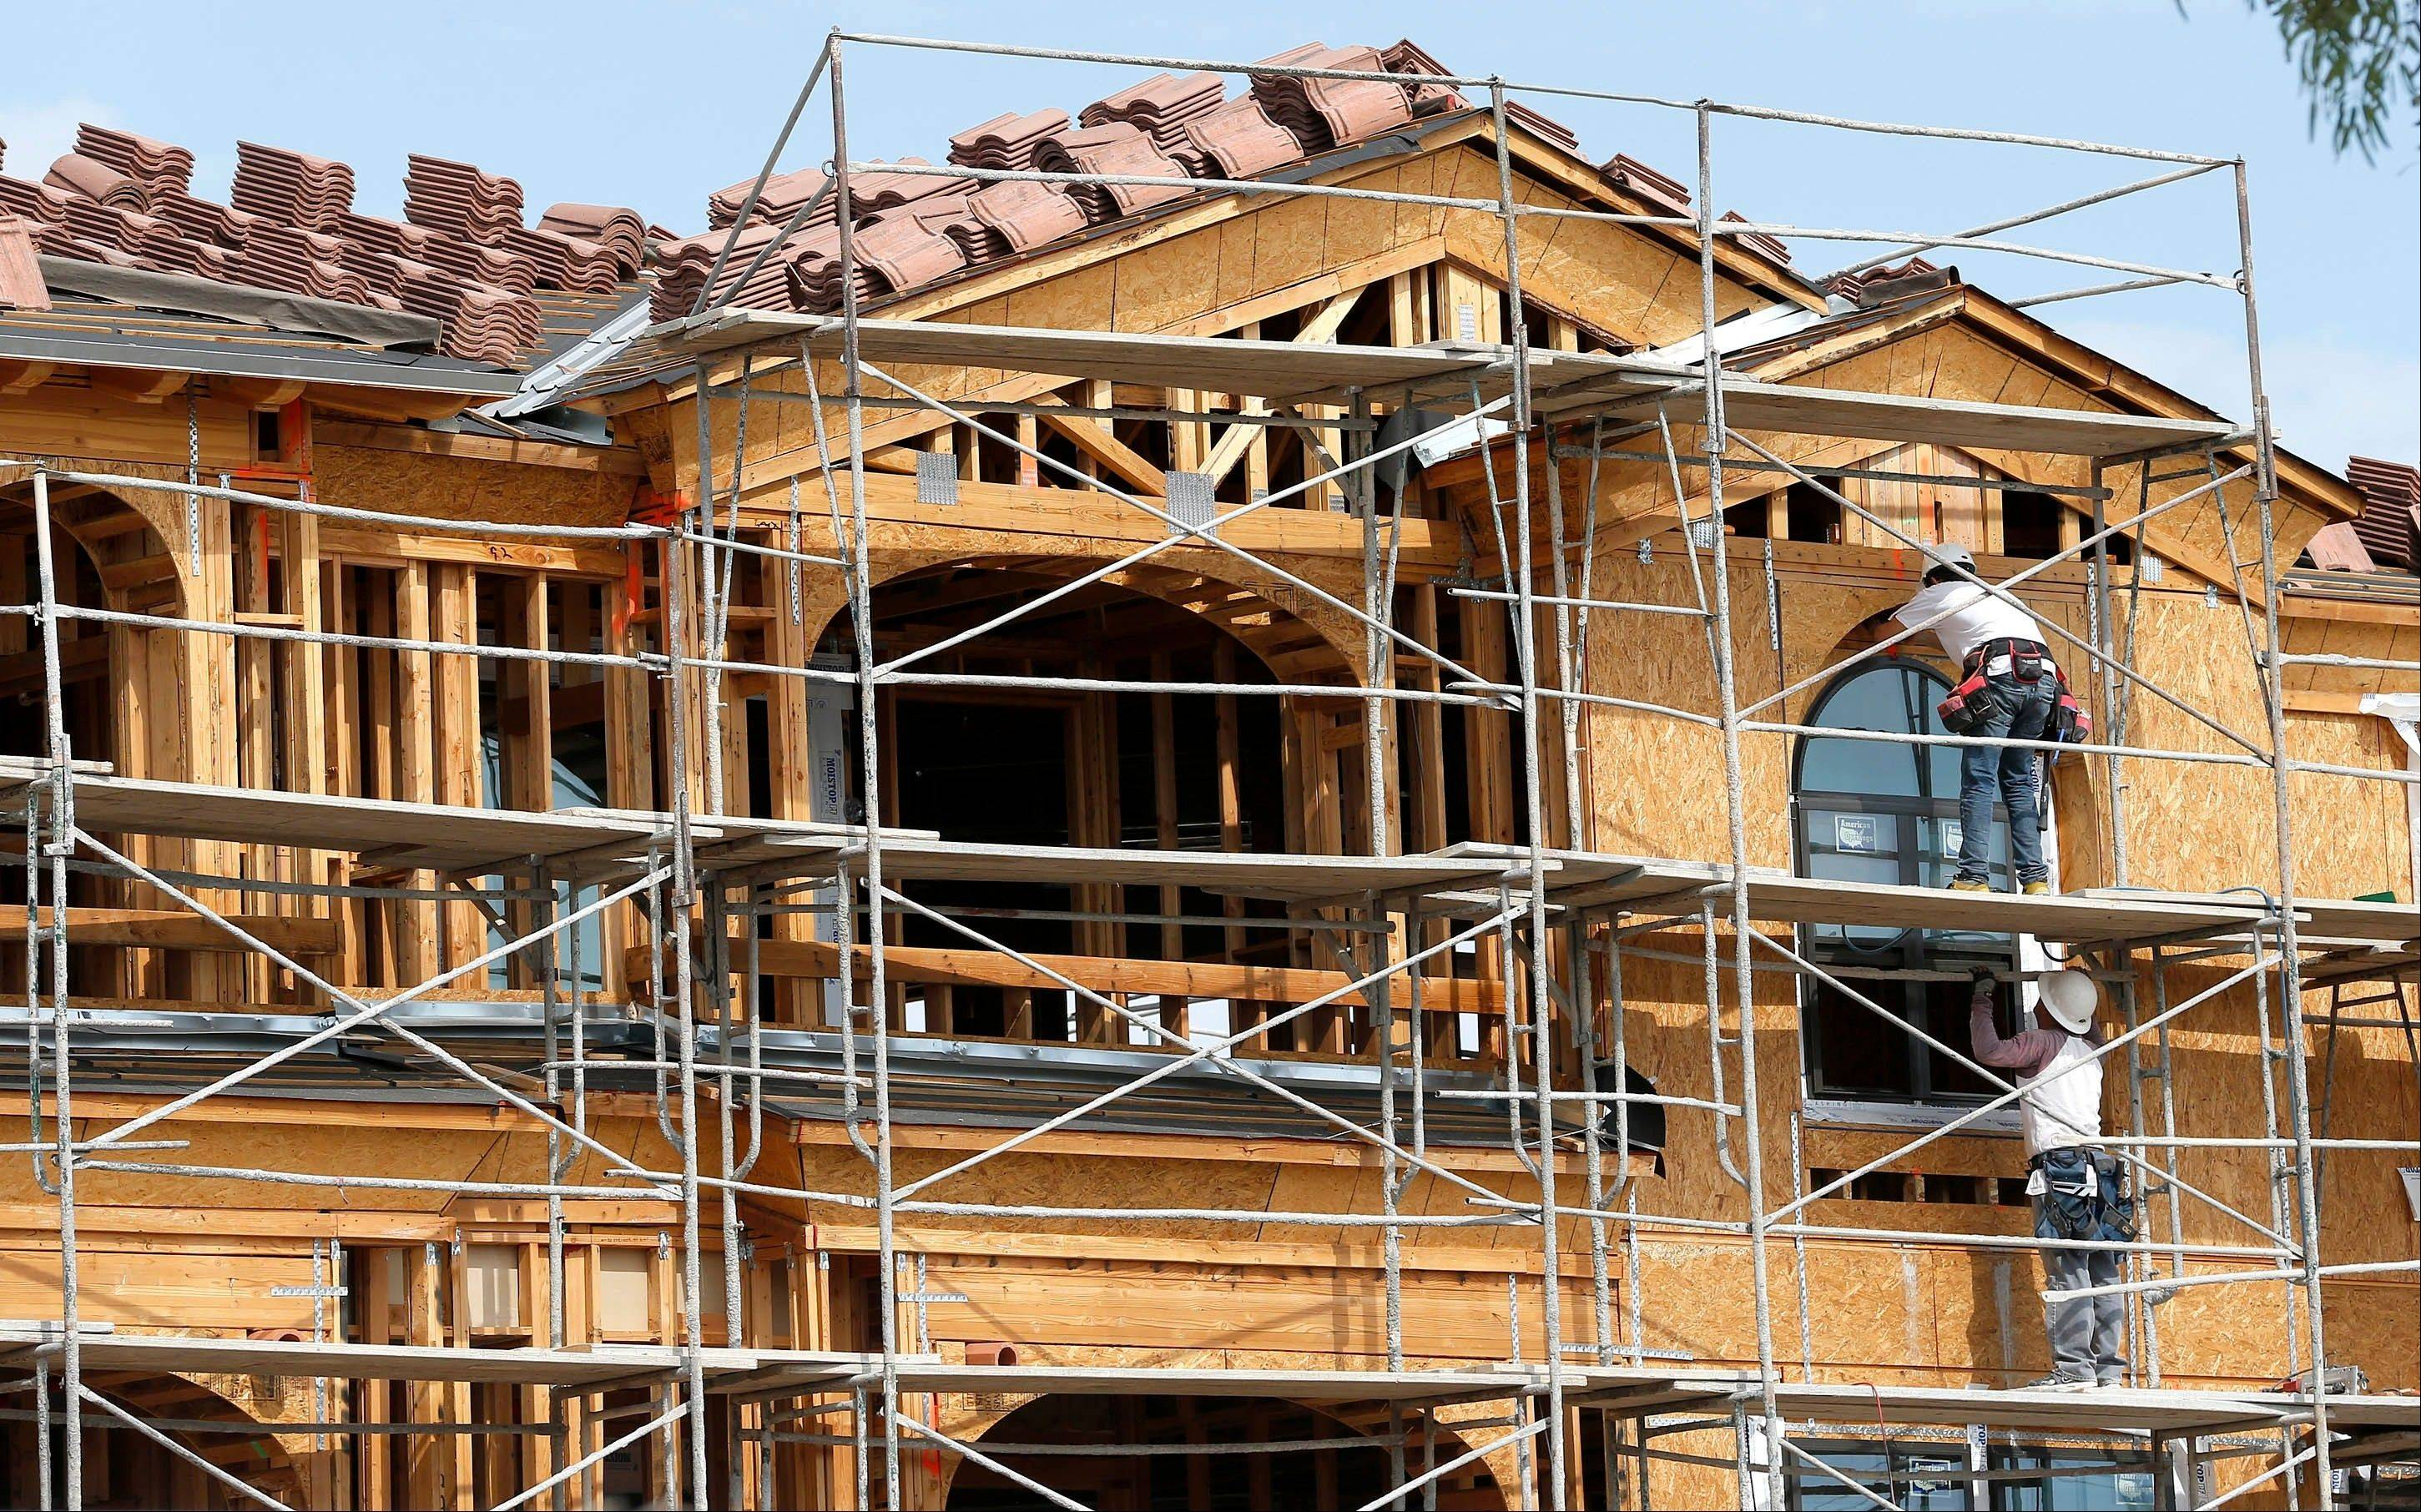 Construction workers install exterior windows on an apartment complex in Tempe, Ariz. Spending on home remodeling has picked up over the past 18 months and is expected to rise nearly 20 percent to $151 billion by the fourth quarter of 2013, according to a recent report by the Joint Center for Housing Studies at Harvard University.